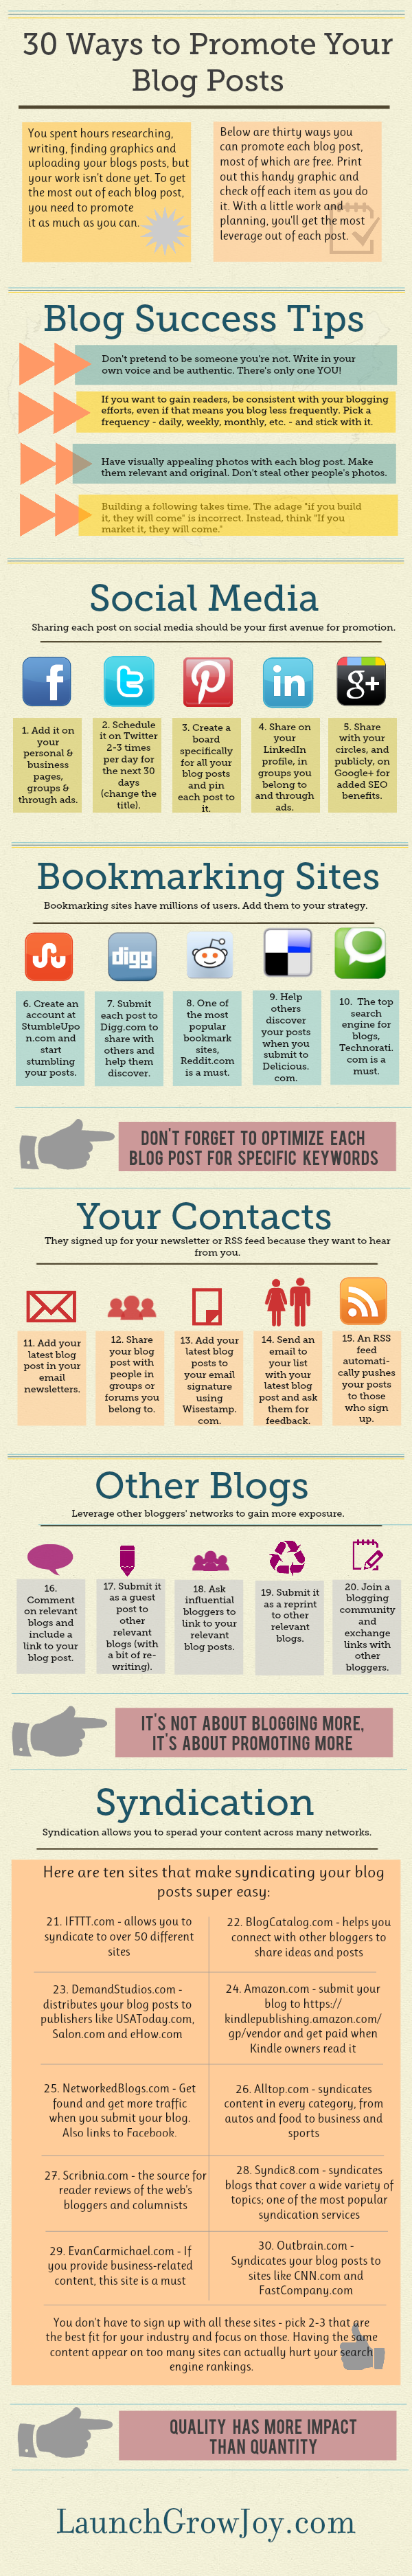 Promote Your Blog Posts-Infographic